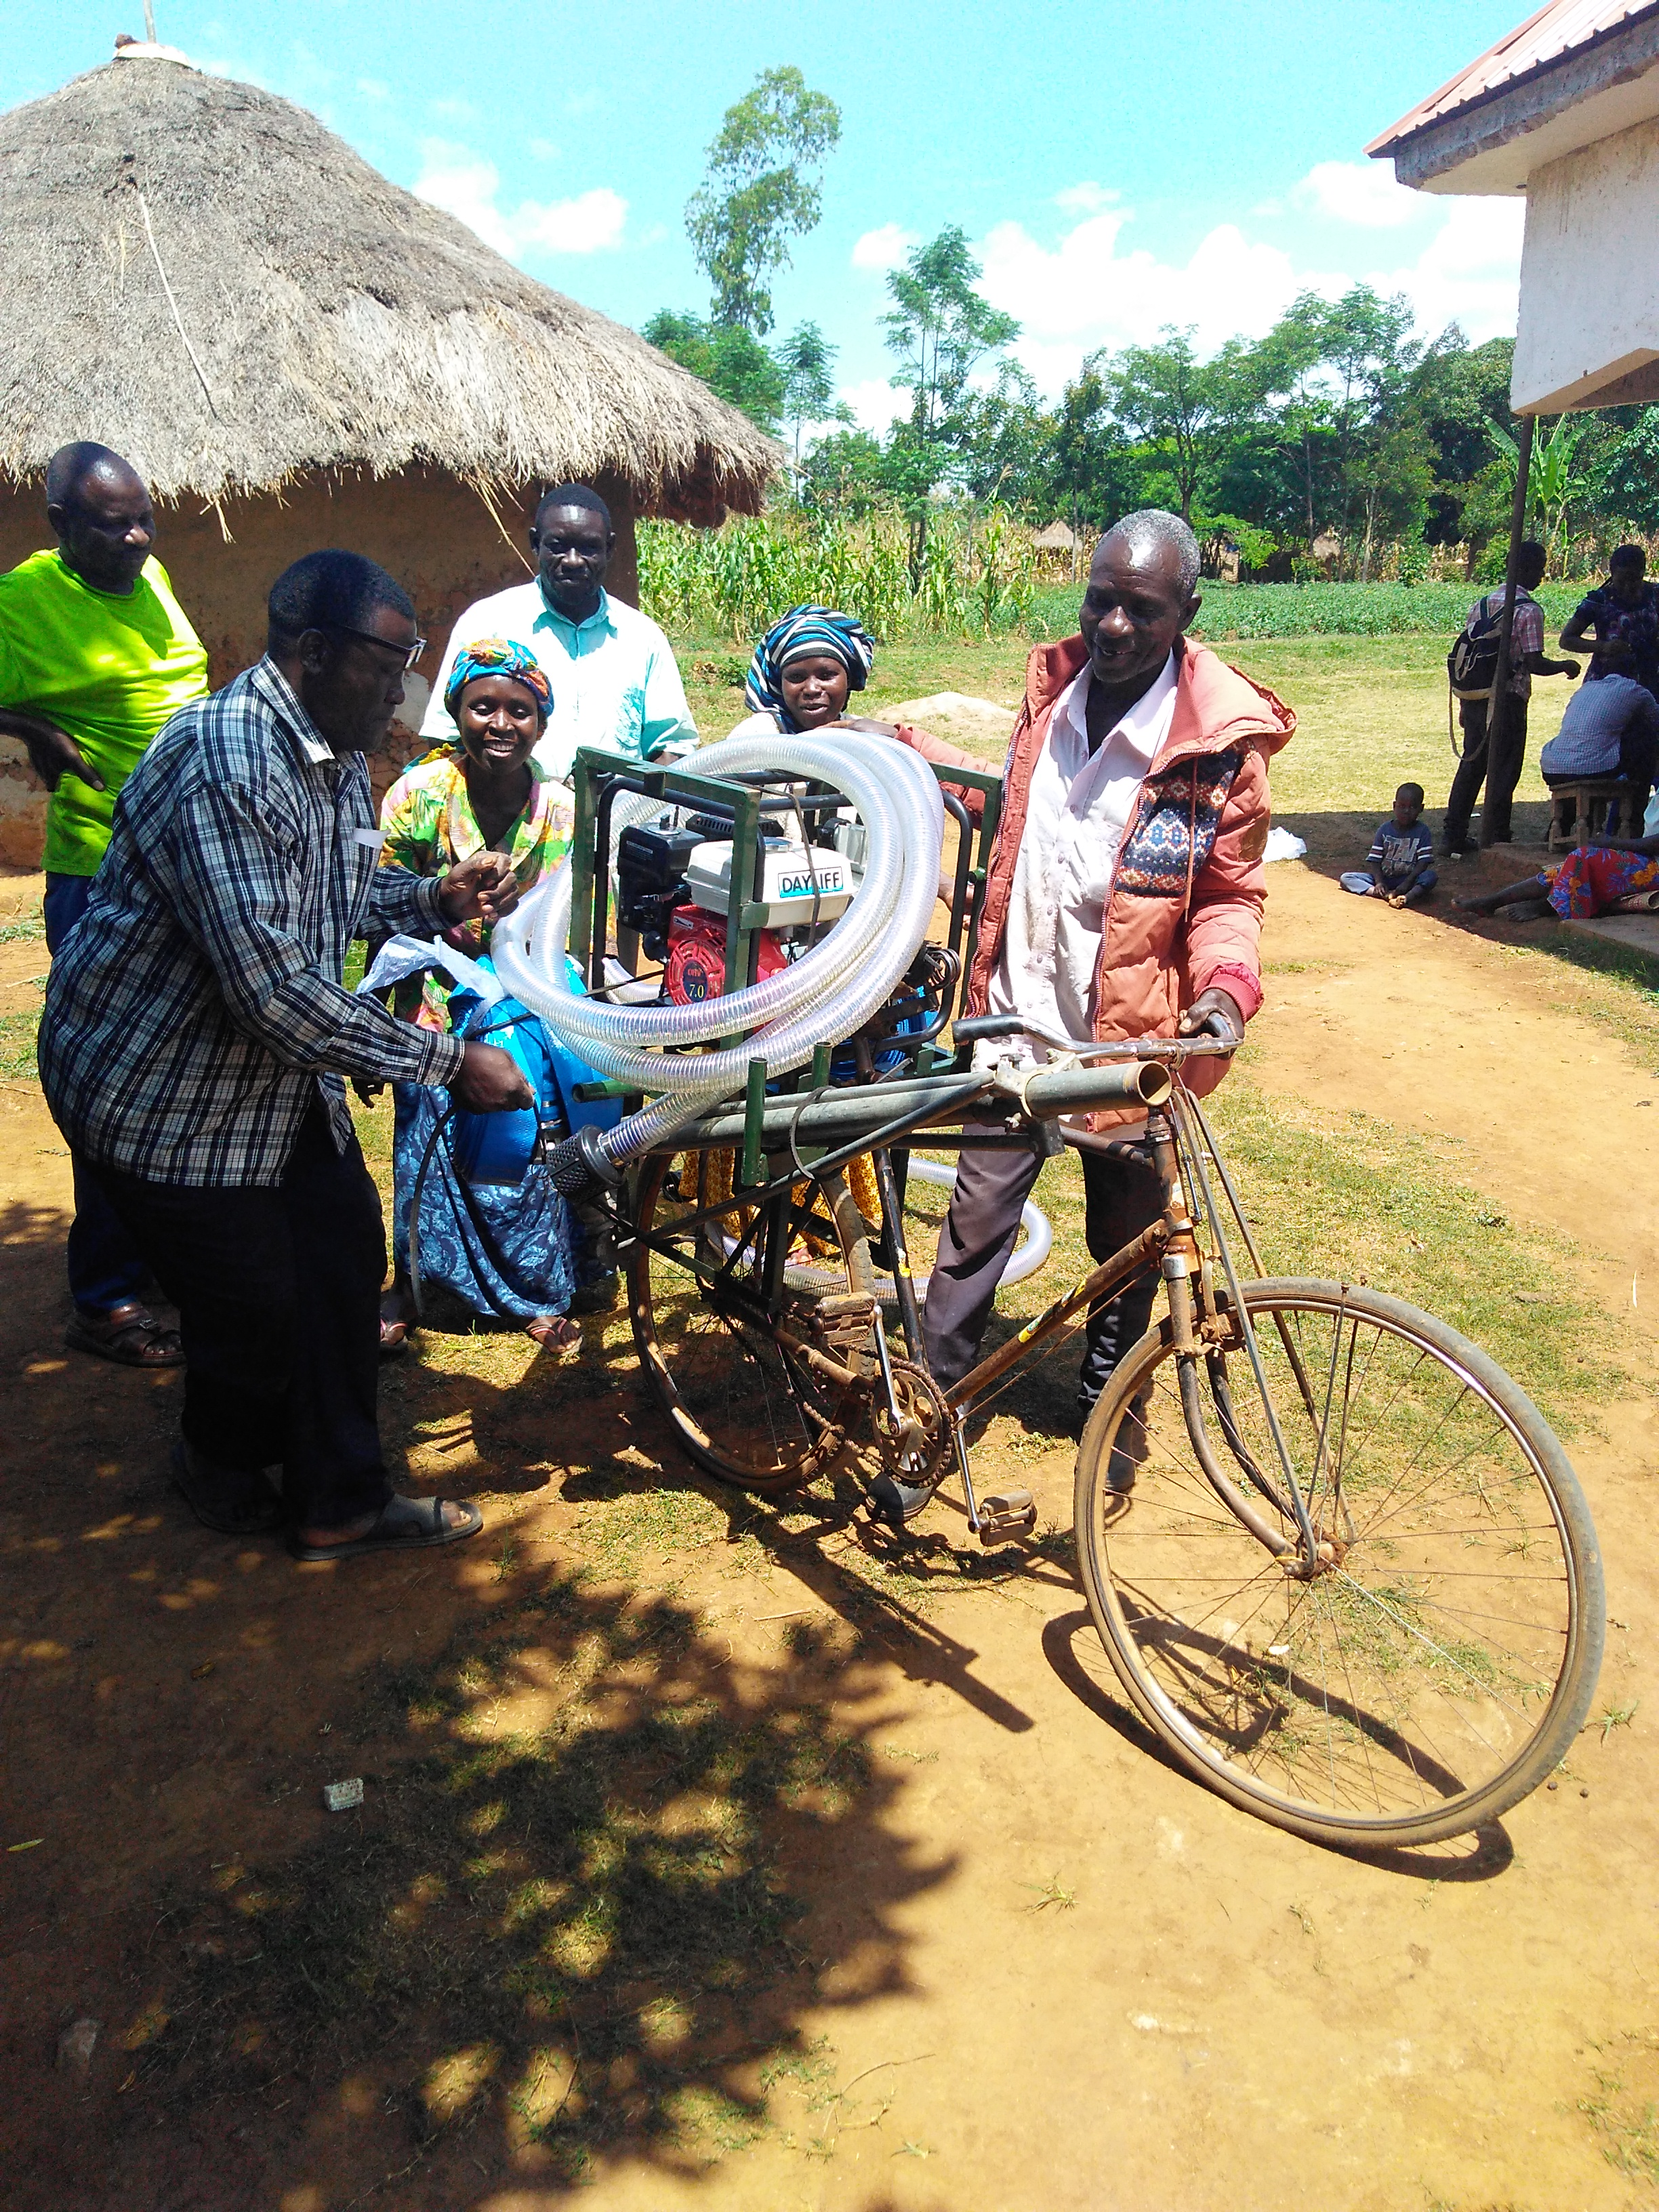 Shareable—and moveable—irrigation.   Farmers at Tente hand off the bicycle-carry irrigation system, which is maintained by the irrigation group and circulated among members.